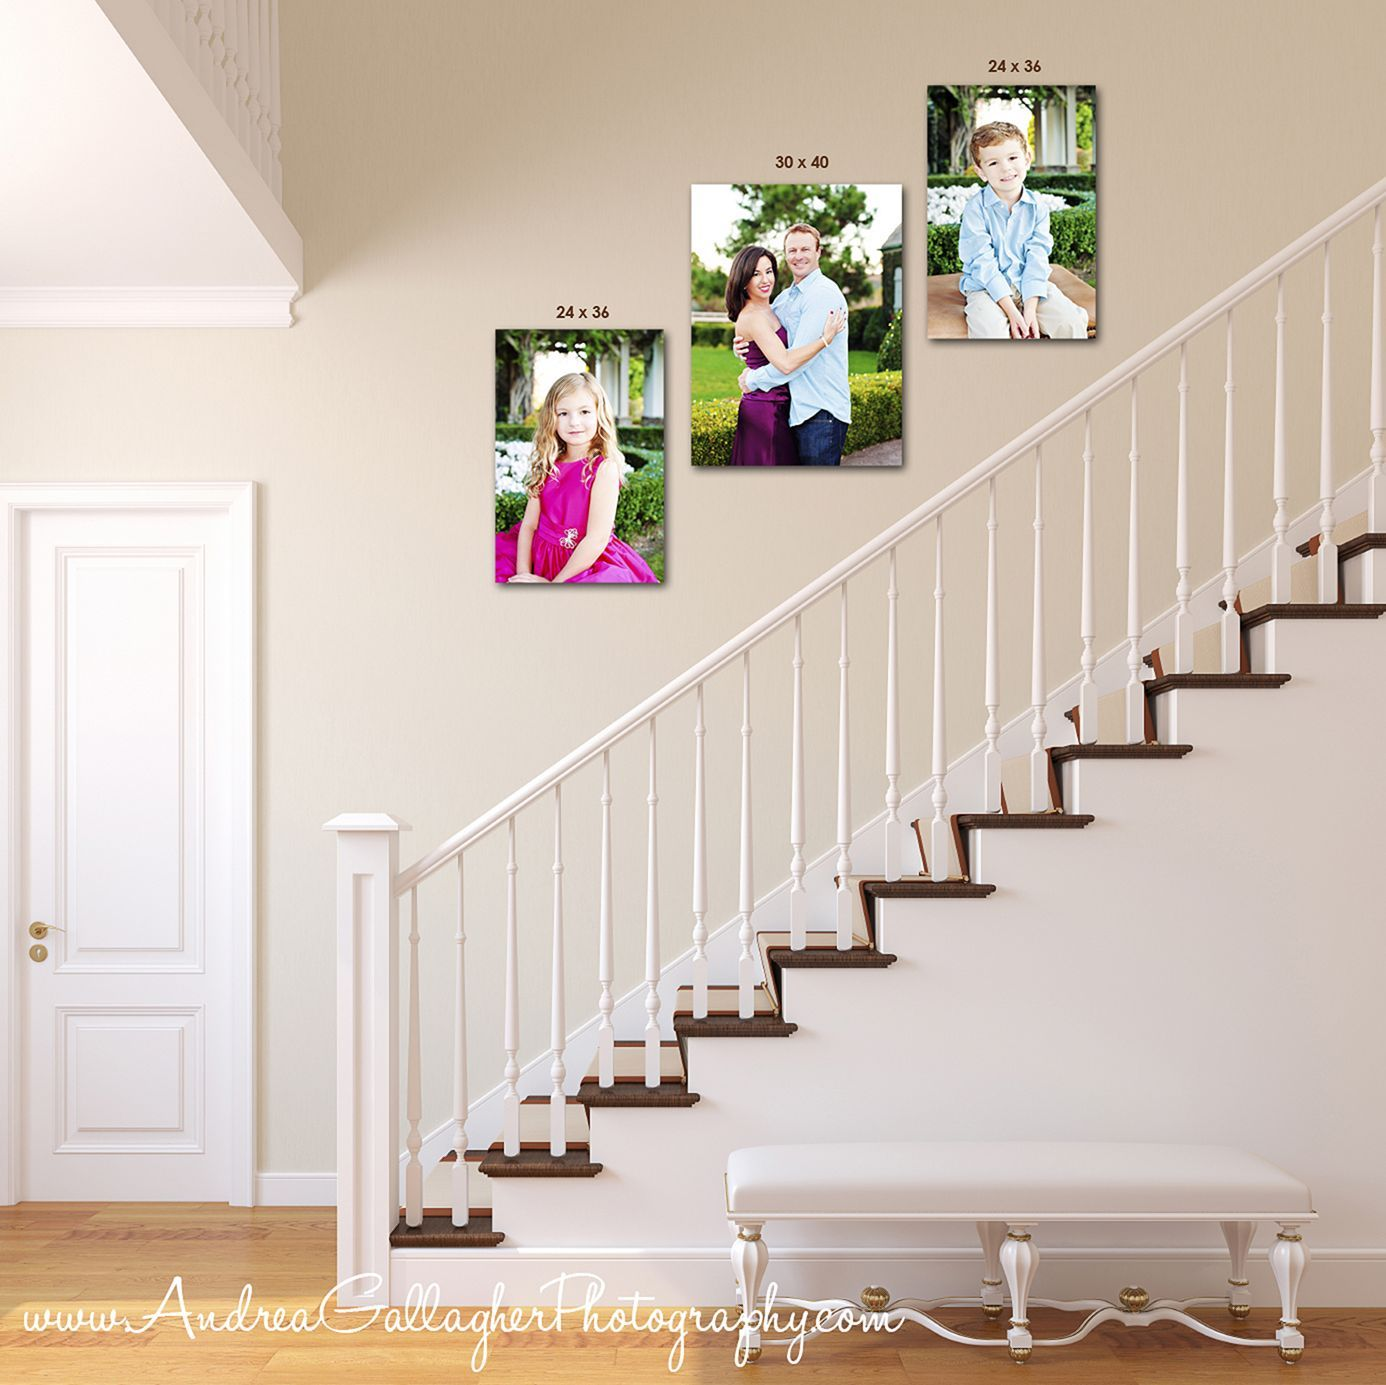 15+ Awesome Arranging Pictures On A Stair Wall Ideas / FresHOUZ.com    Picture arrangements, Picture arrangements on wall, Gallery wall design